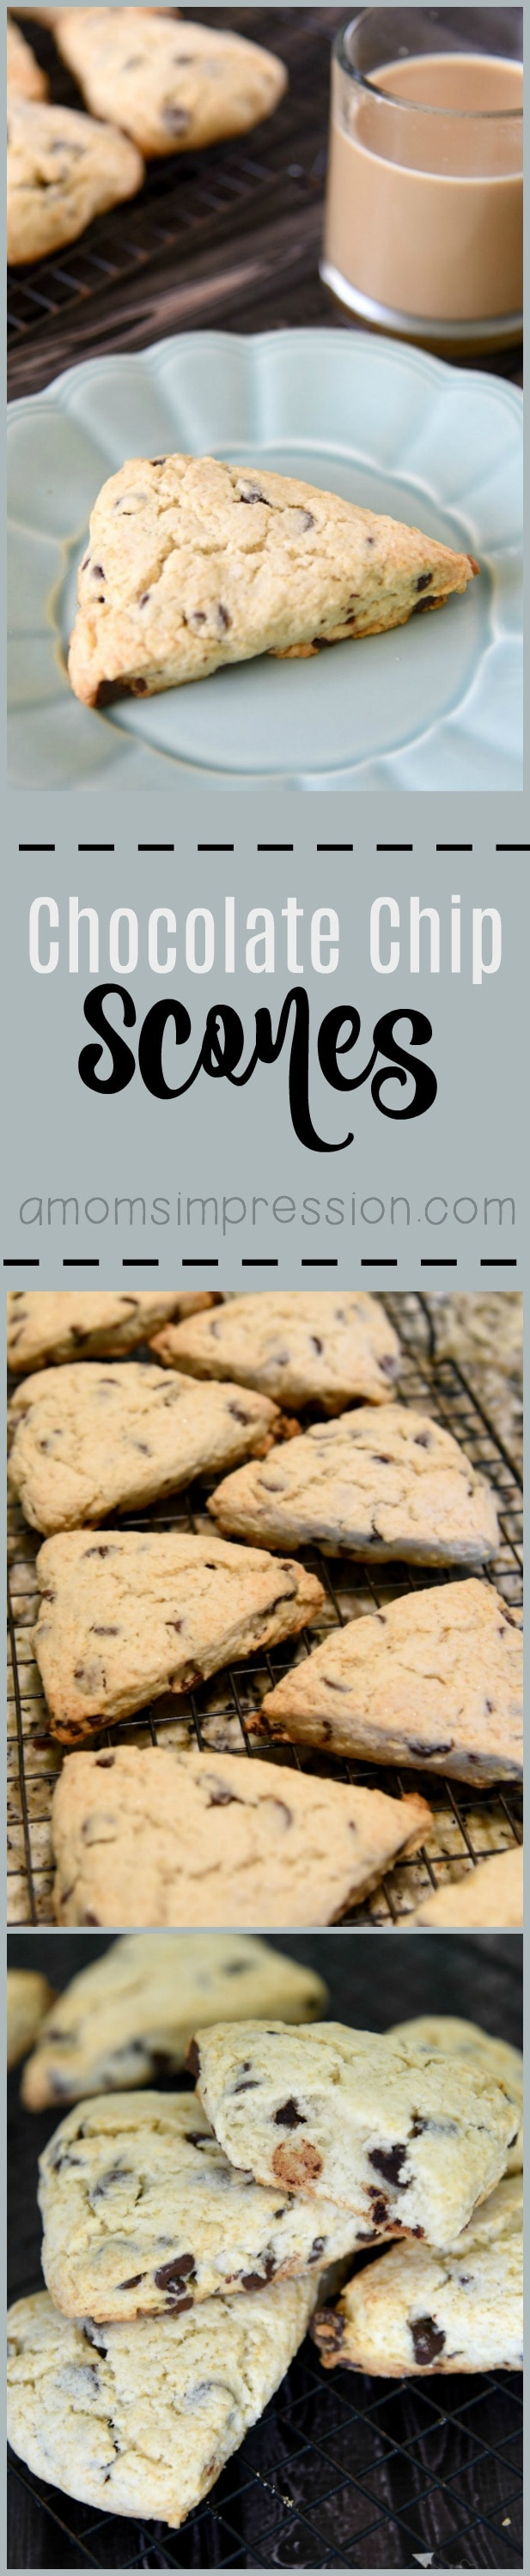 This easy Chocolate Chip Scone Recipe is simple and can be made in under 30 minutes. The scones are crispy on the outside and nice and fluffy on the inside.